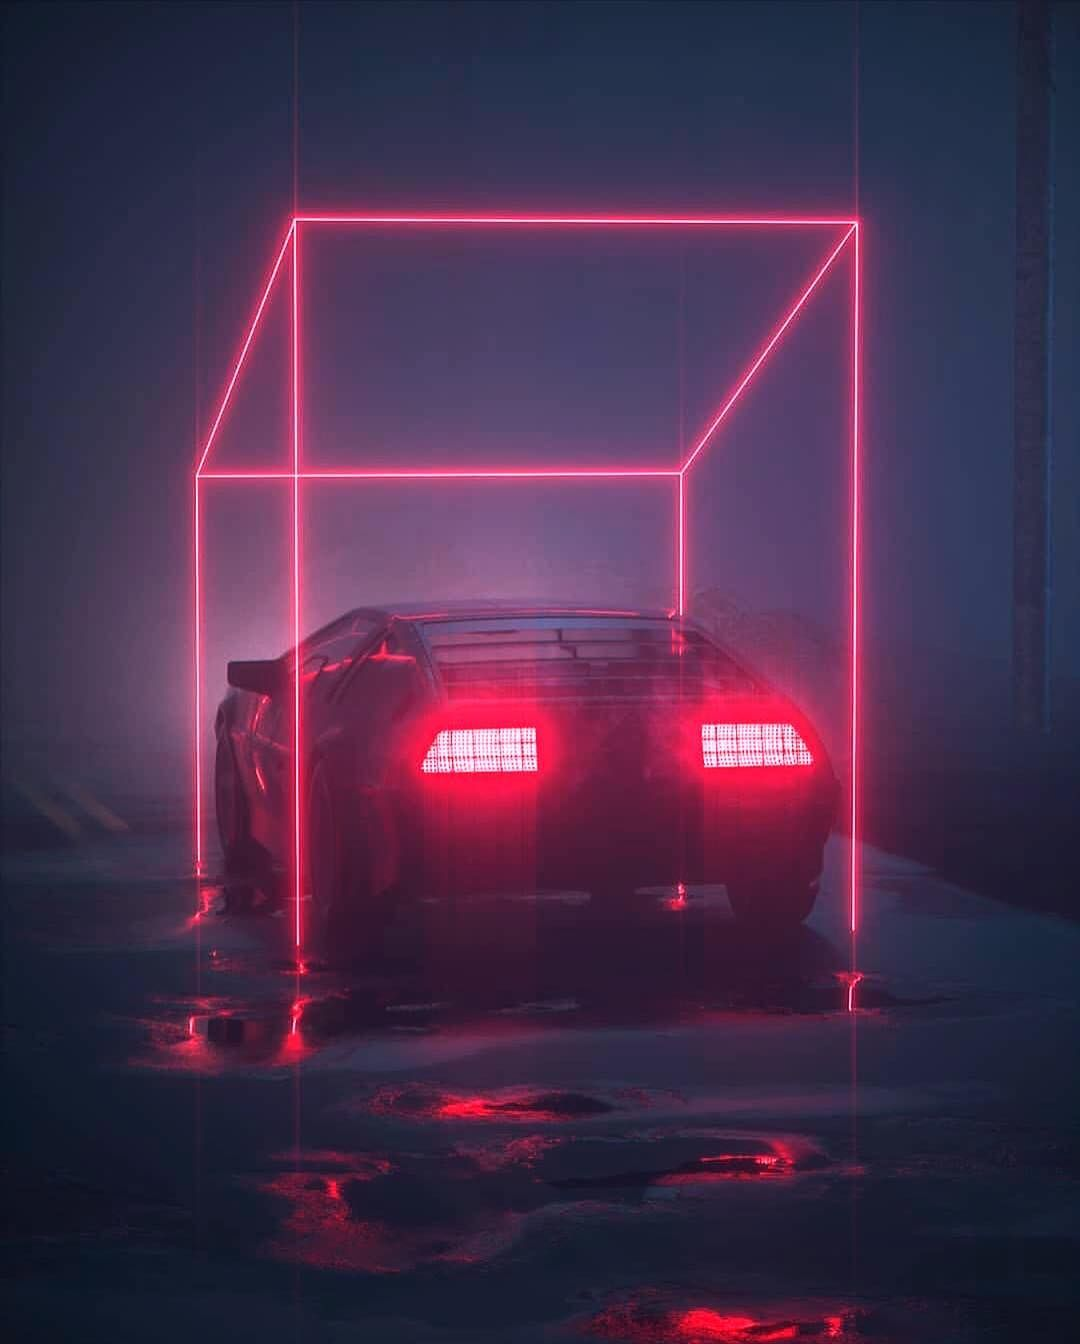 Neon Delorean Synthwave 80s Car In 2020 Synthwave Delorean Neon Aesthetic